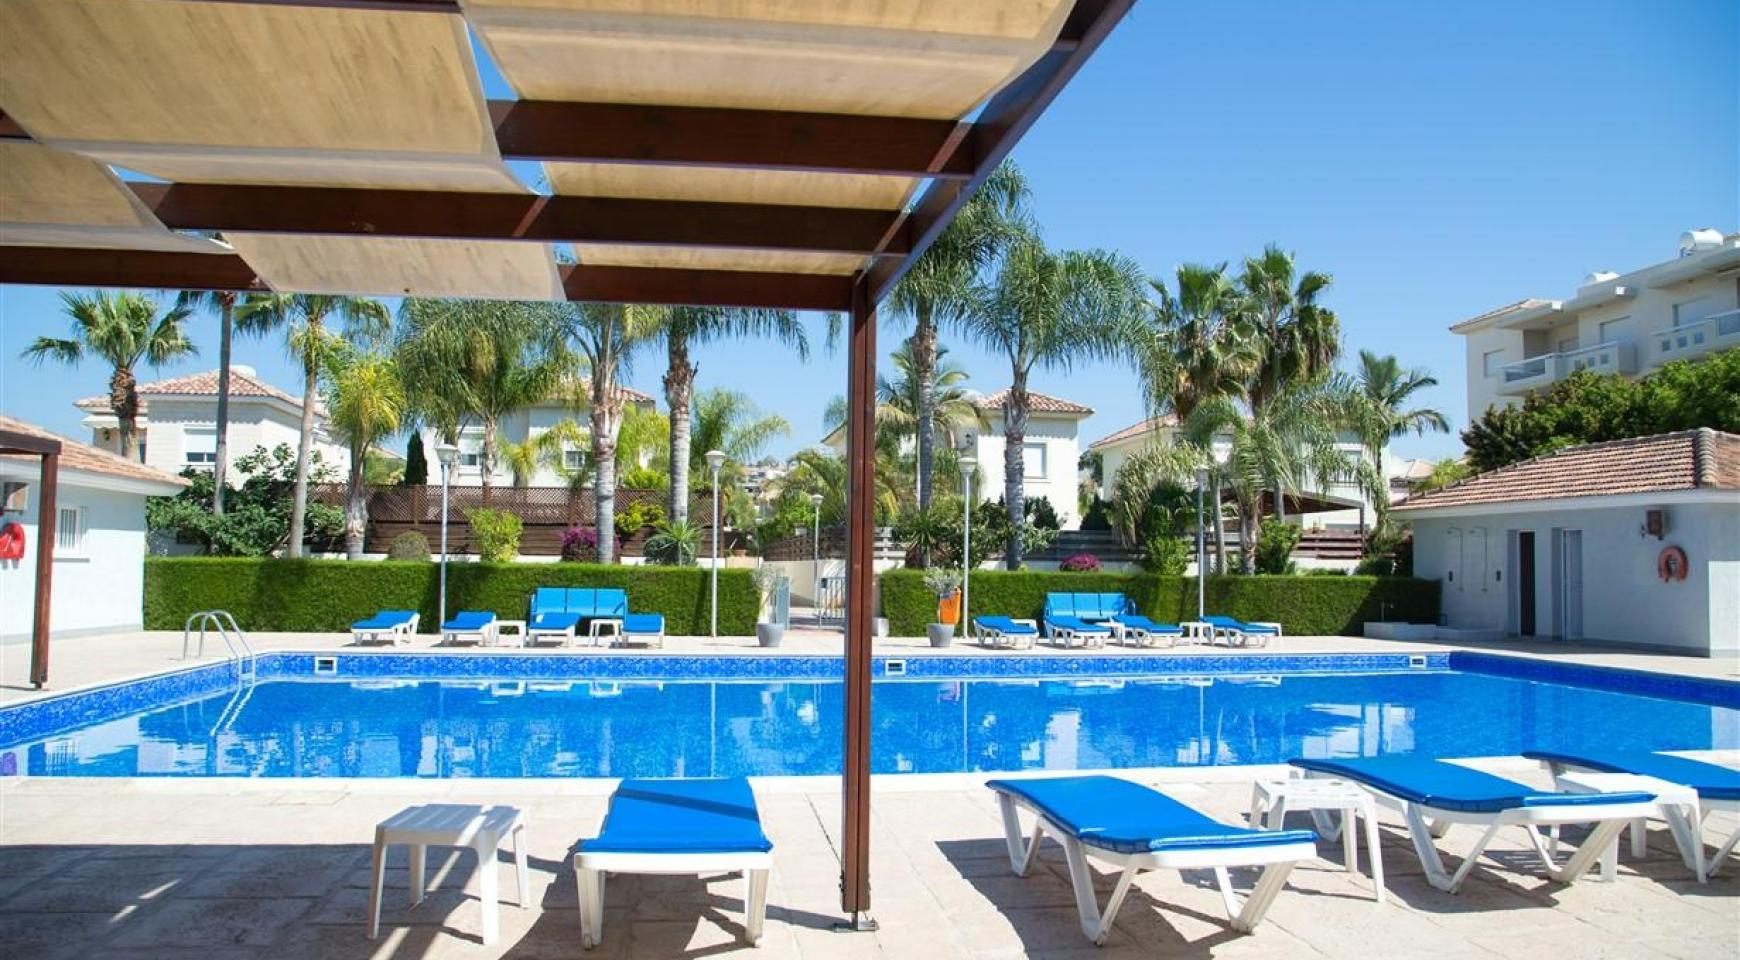 Luxury 2 Bedroom Apartment Mesogios Iris 304 in the Tourist area near the Beach - 31